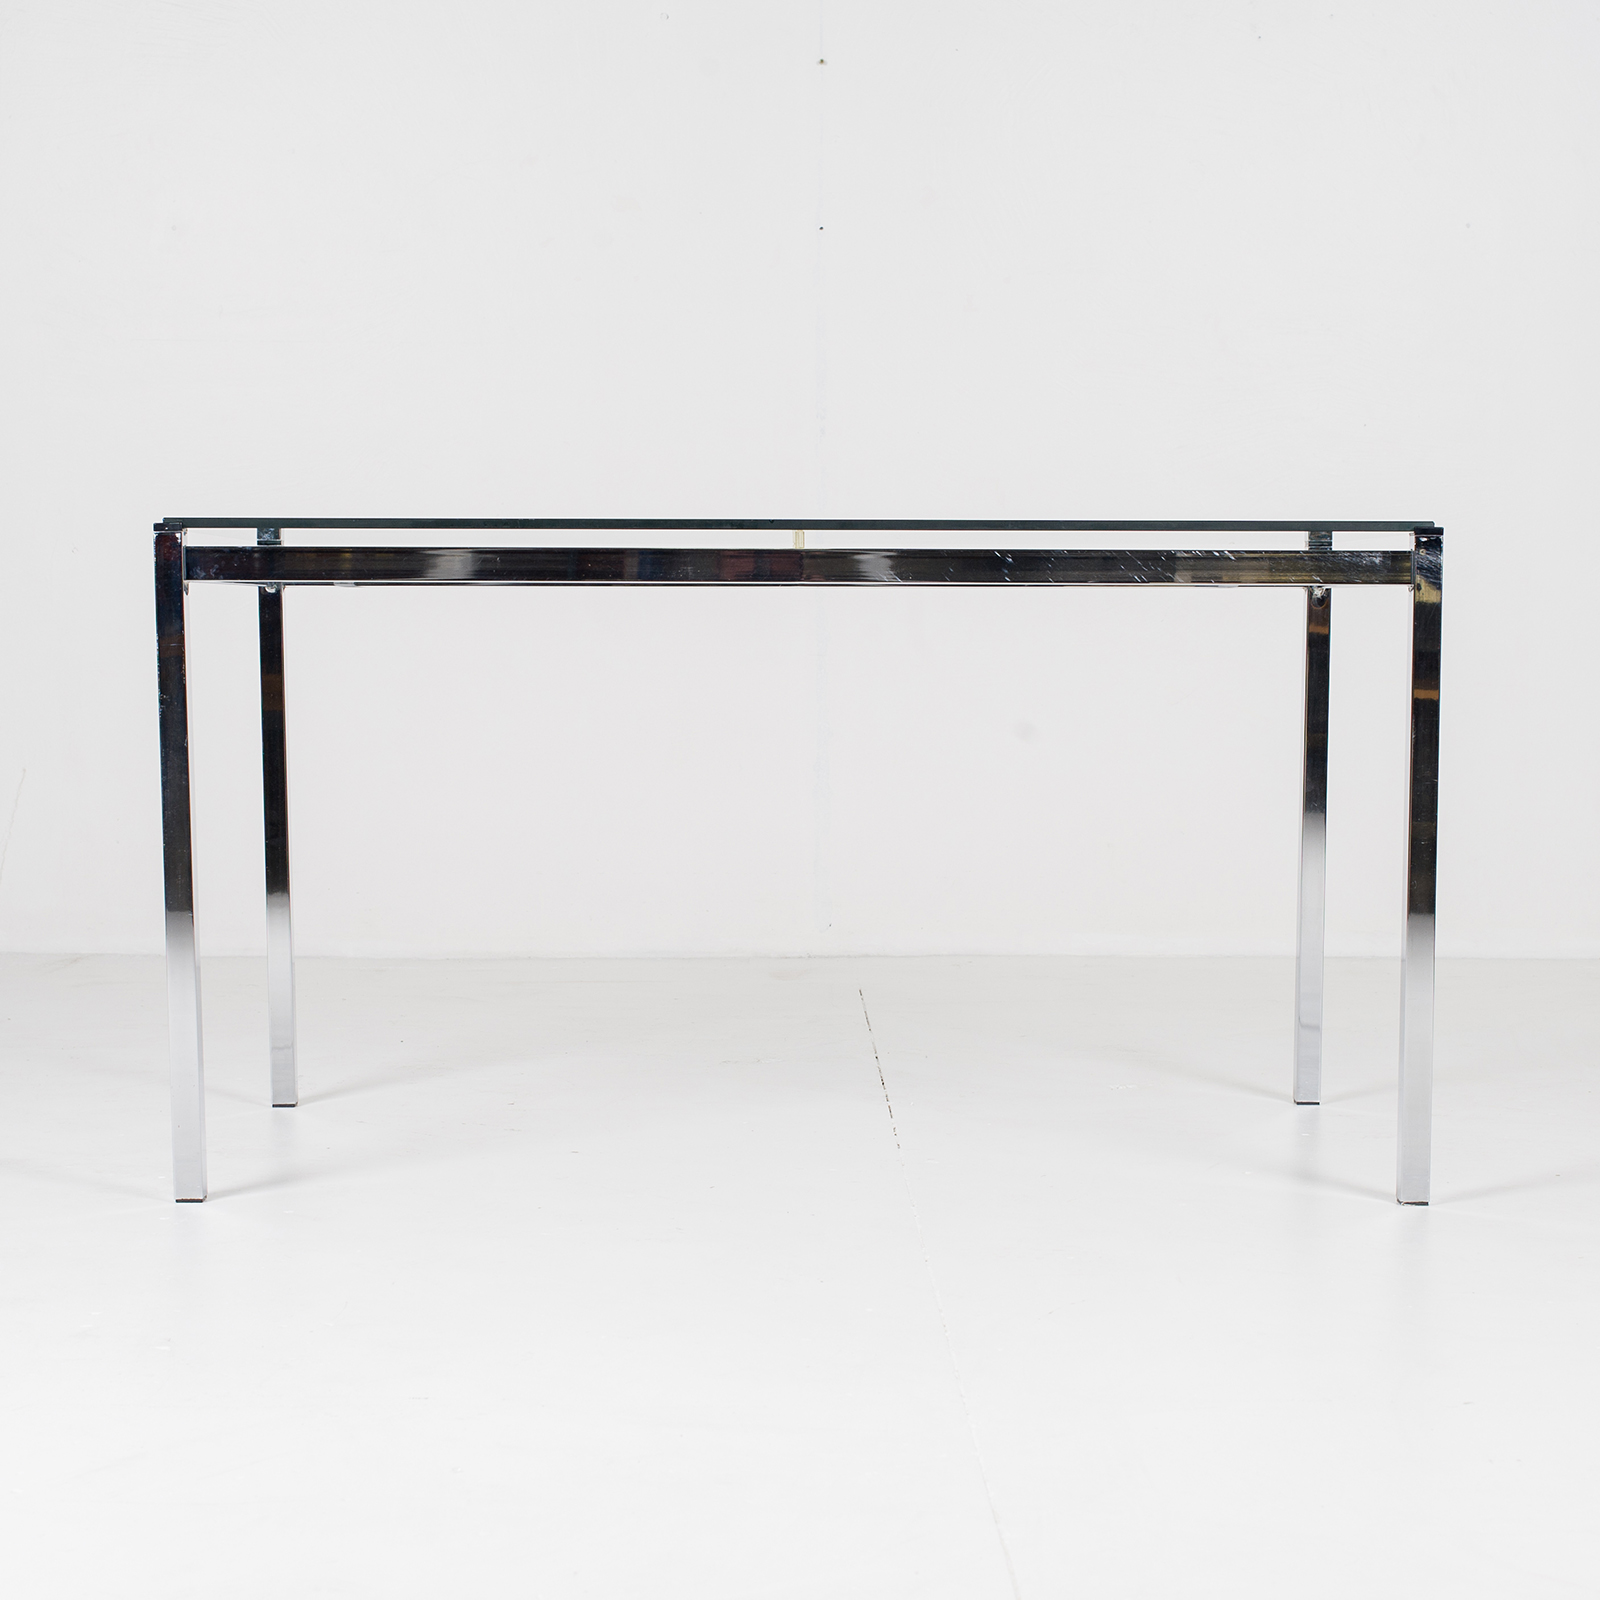 Dining Table In Glass And Chrome, 1970s, The Netherlands806